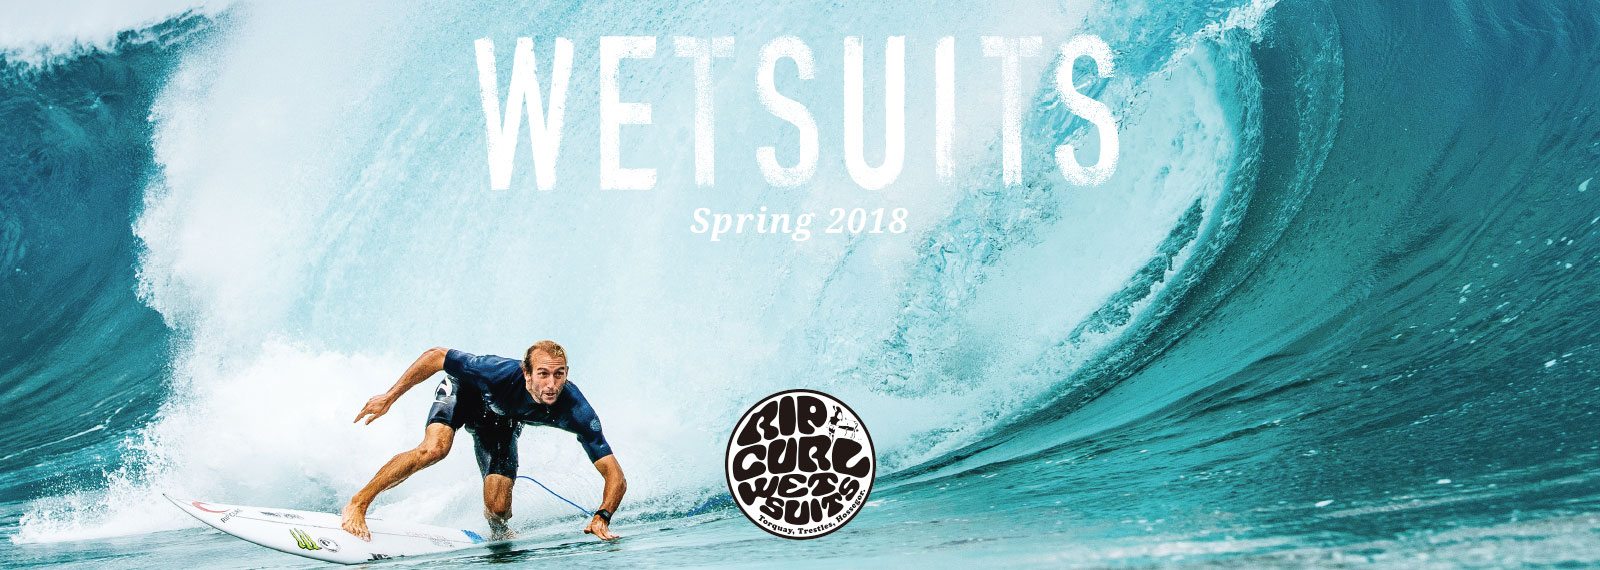 wetsuit spring2018